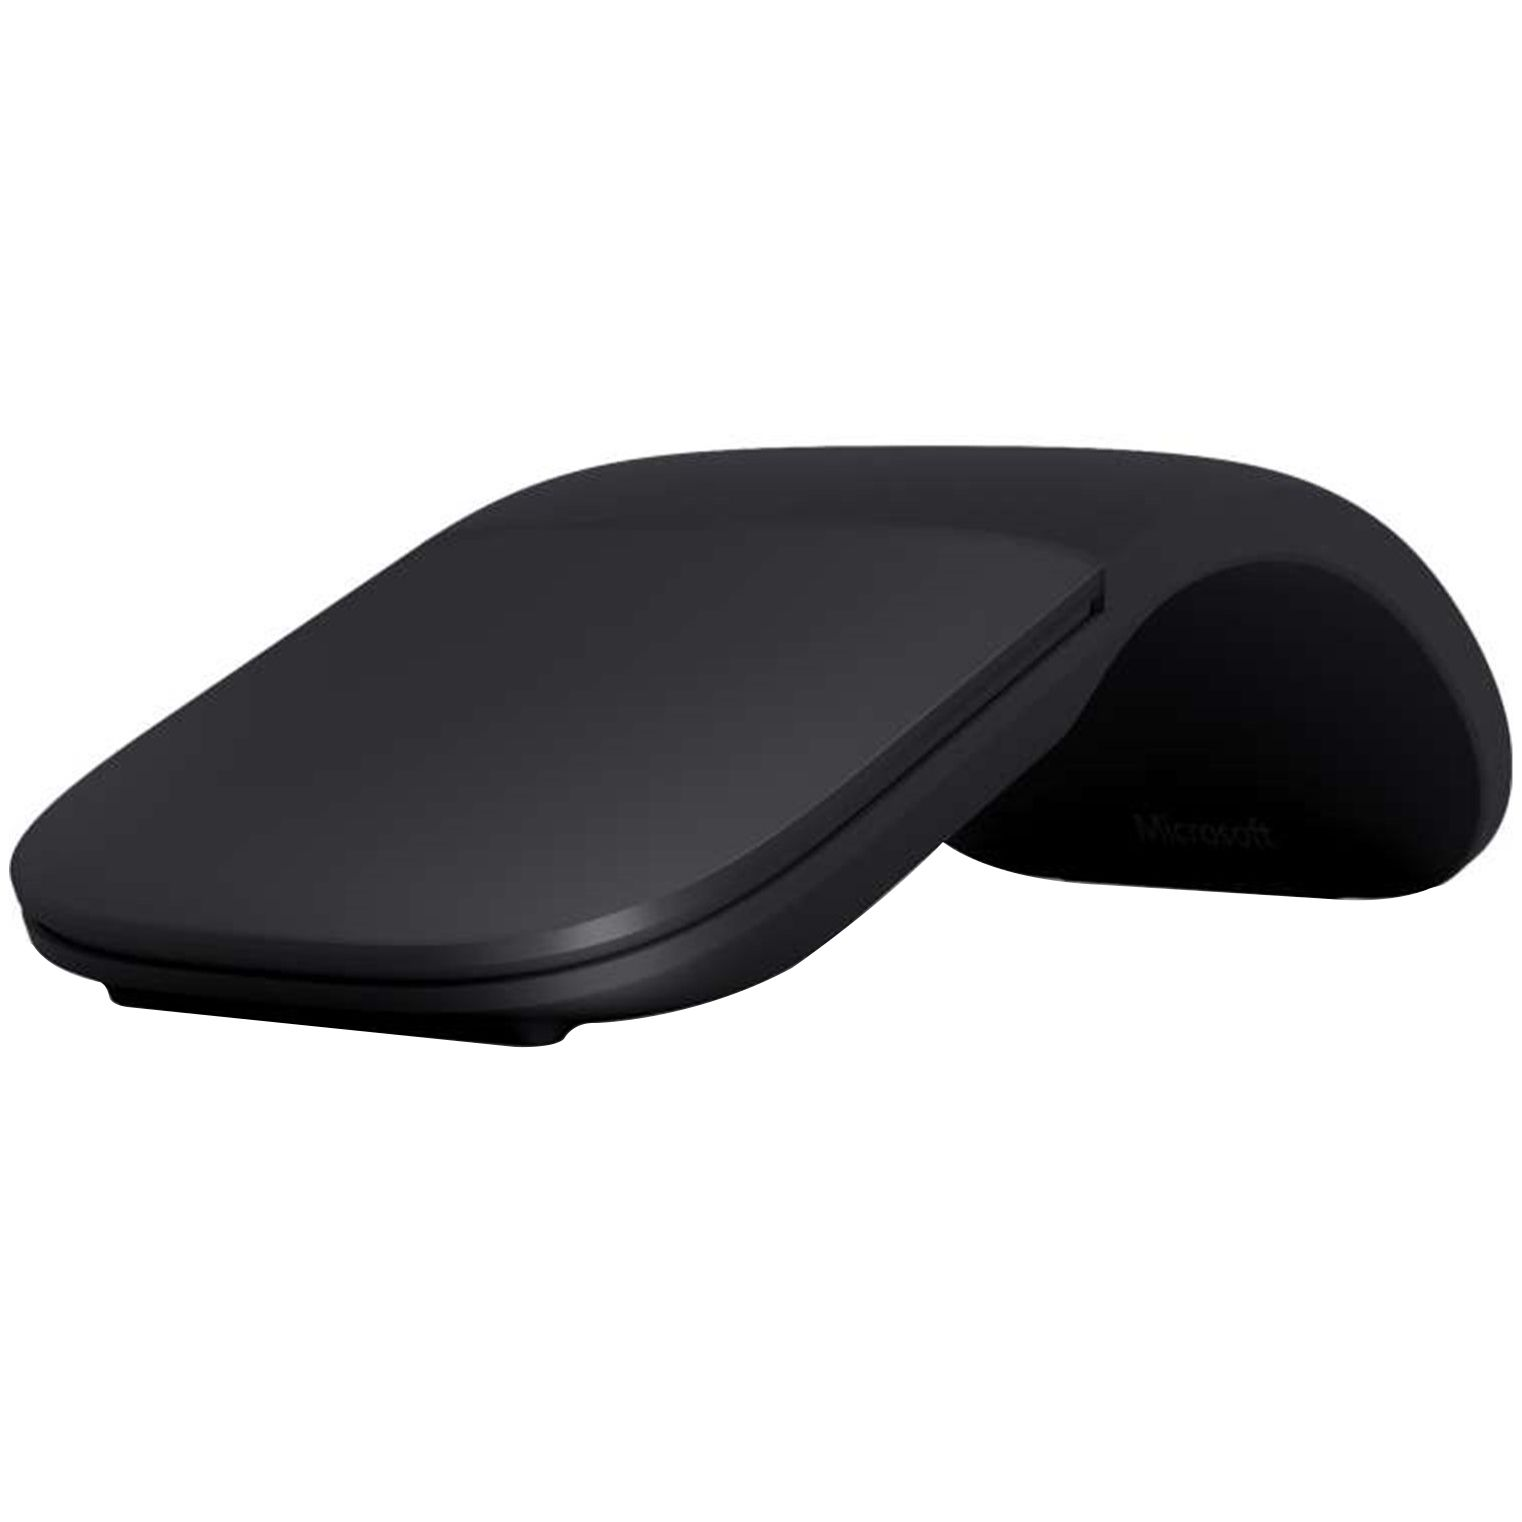 Mouse Microsoft Arc Bluetooth Black